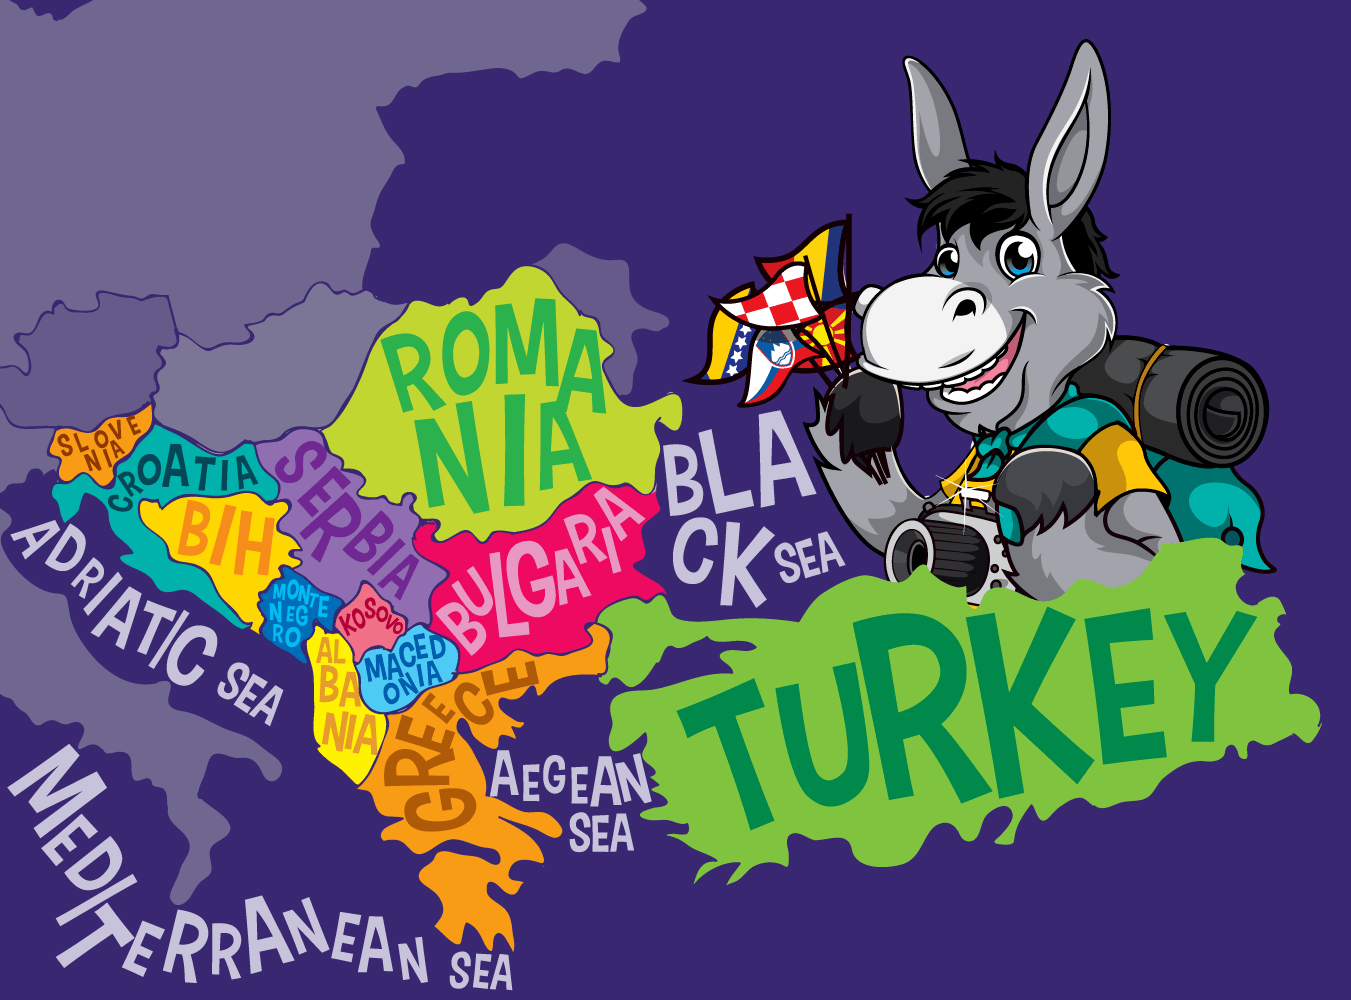 Balkans Map Of The Balkans_Purple